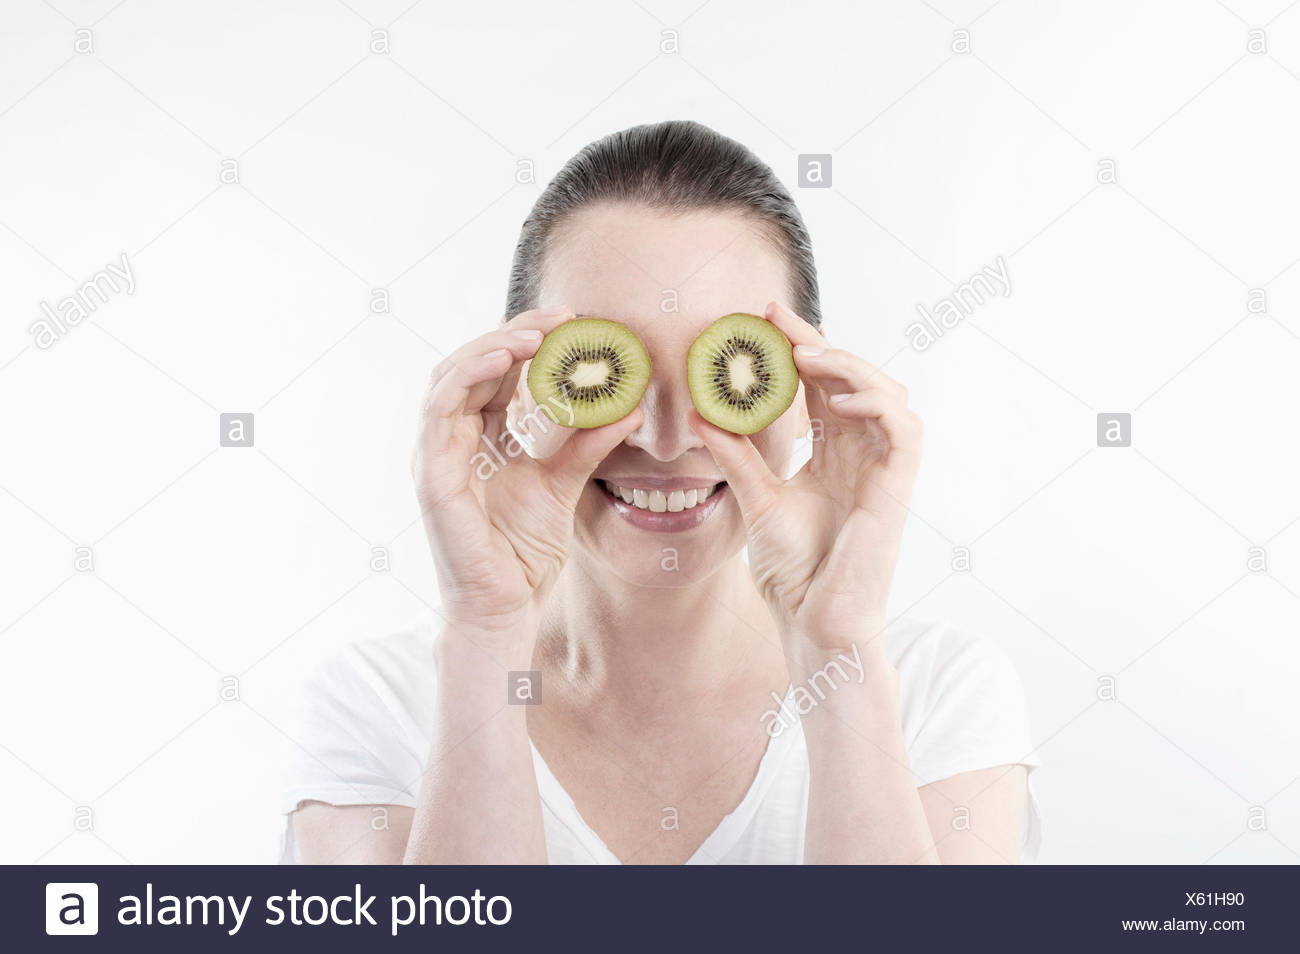 Mature woman holding kiwi slices in front of her eyes, Bavaria, Germany Stock Photo